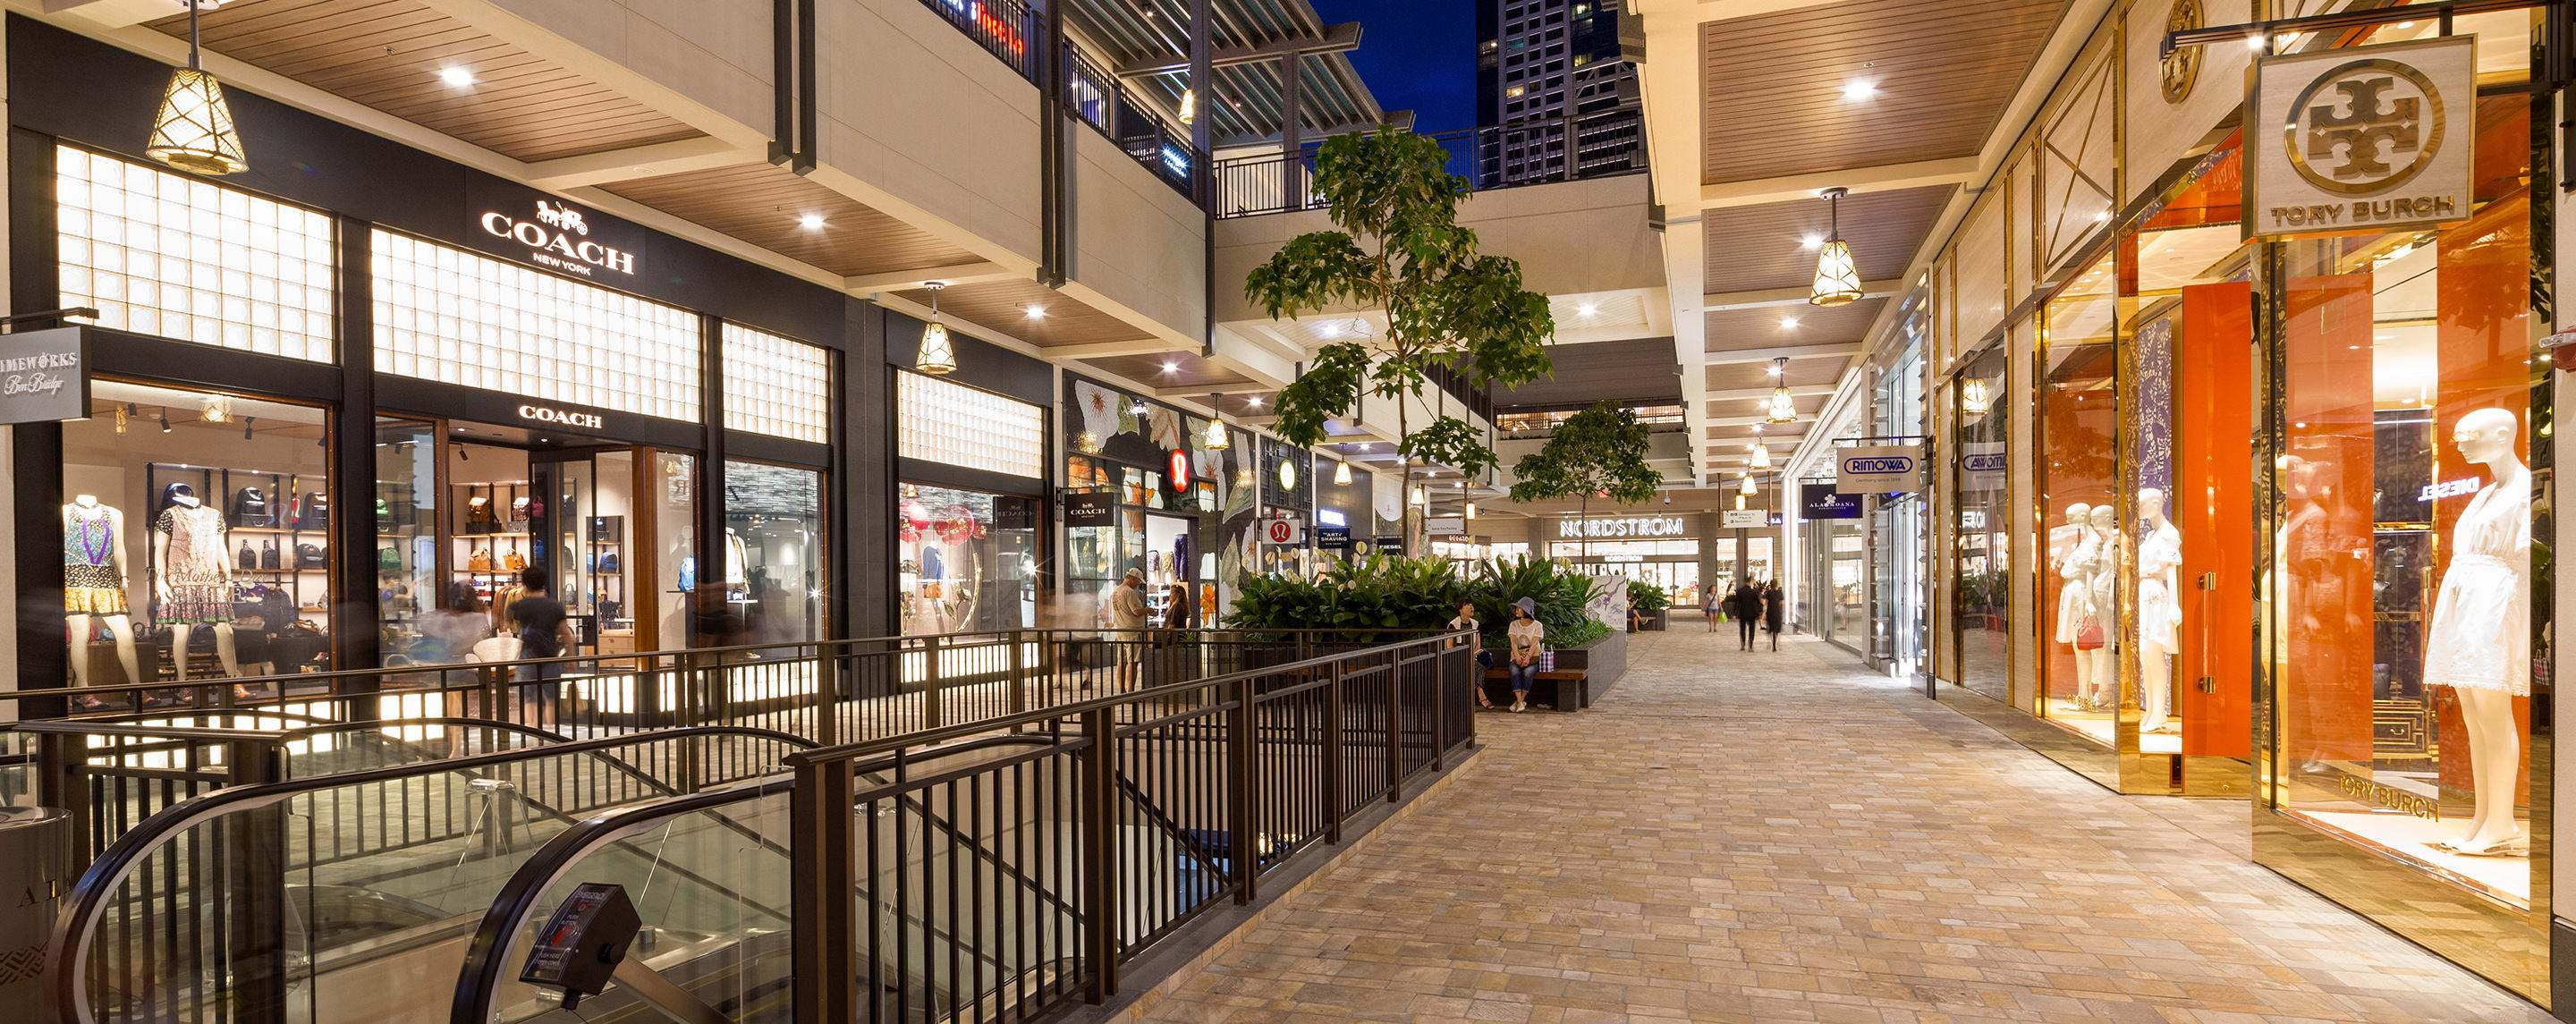 At night, the Ala Moana store fronts light up a walkway for visitors to shop or take a break on a bench.